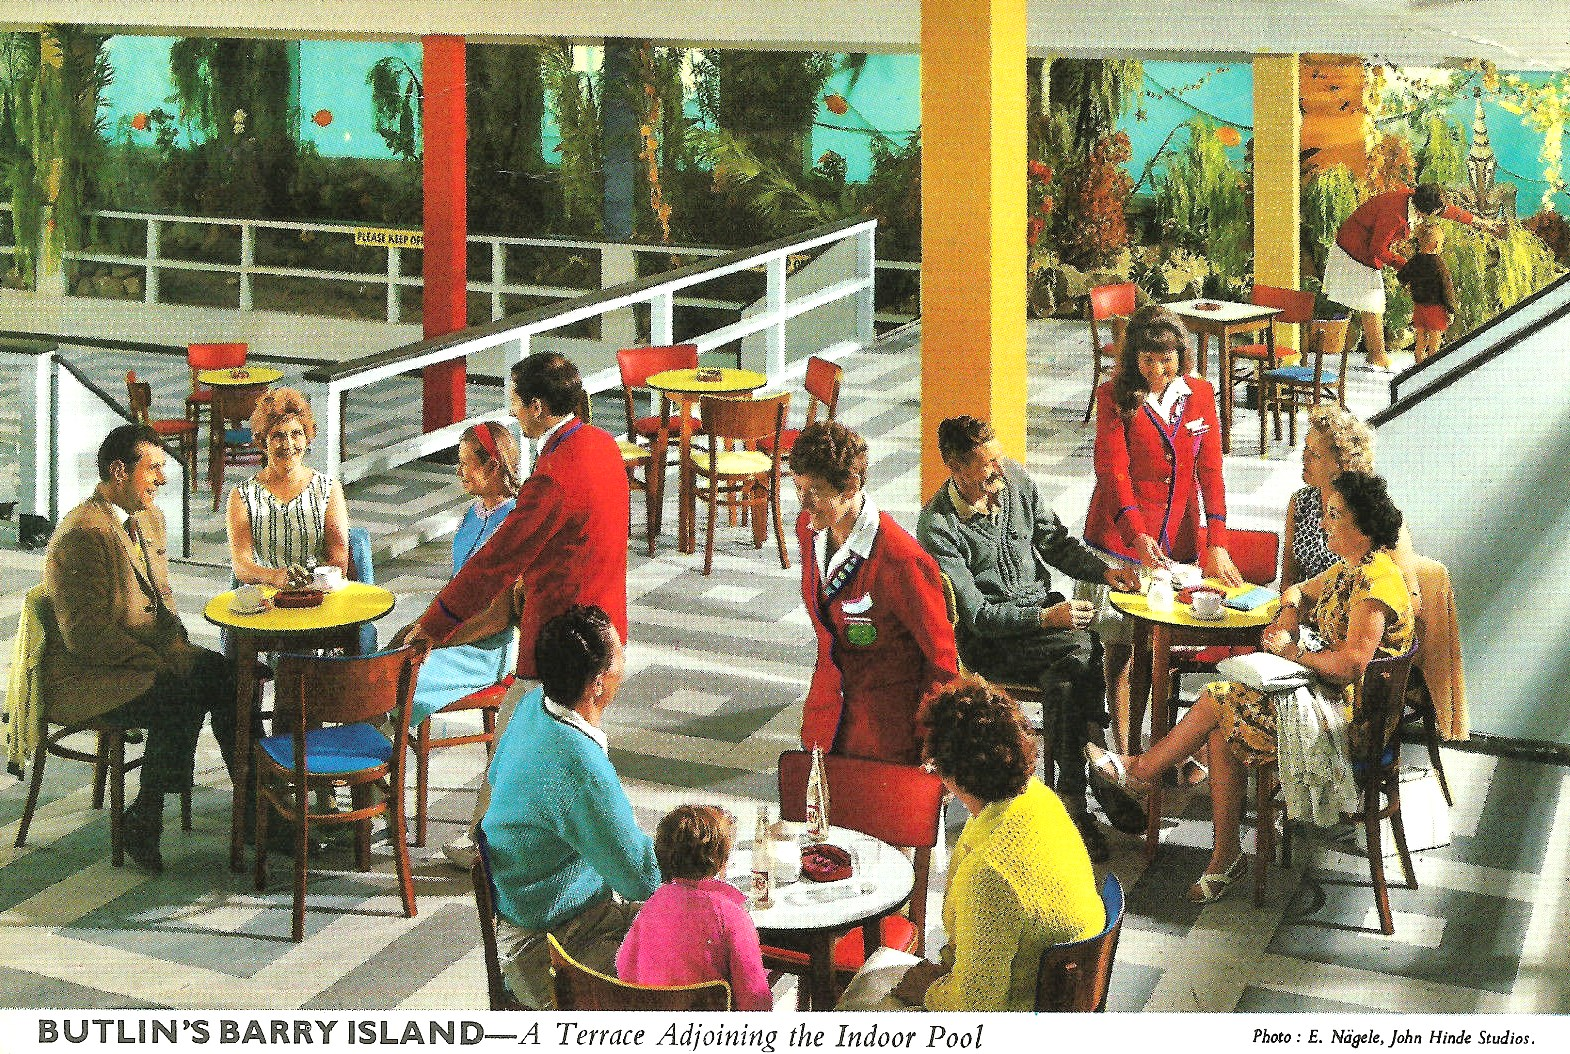 Butlins Barry Island John Hinde